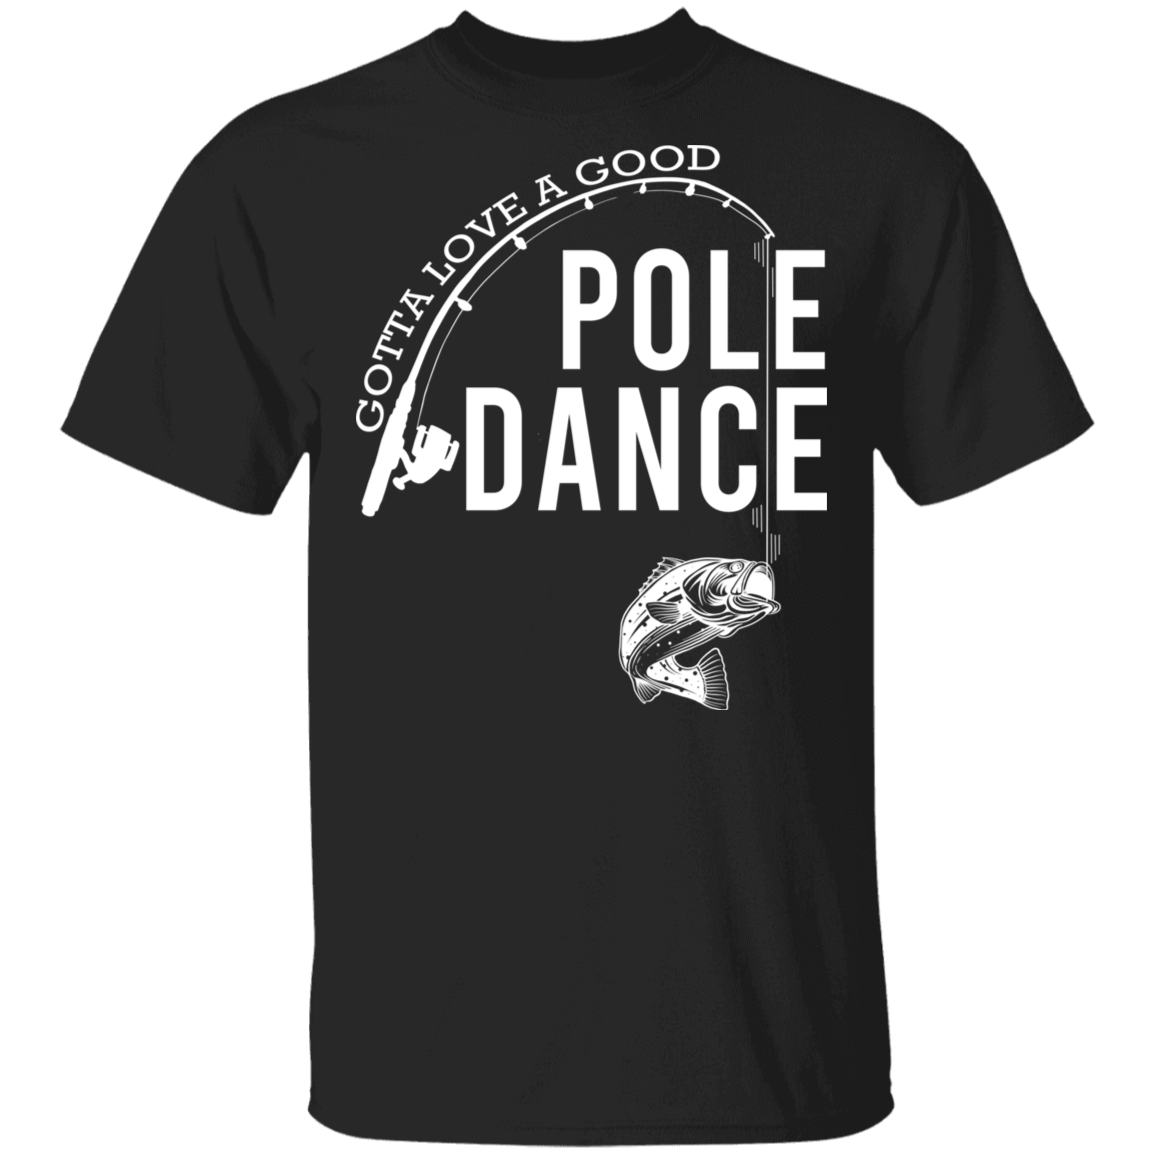 Gotta Love A Good Pole Dance T-Shirt Funny Fishing Quote Shirt Design Gift For Fishing Lover